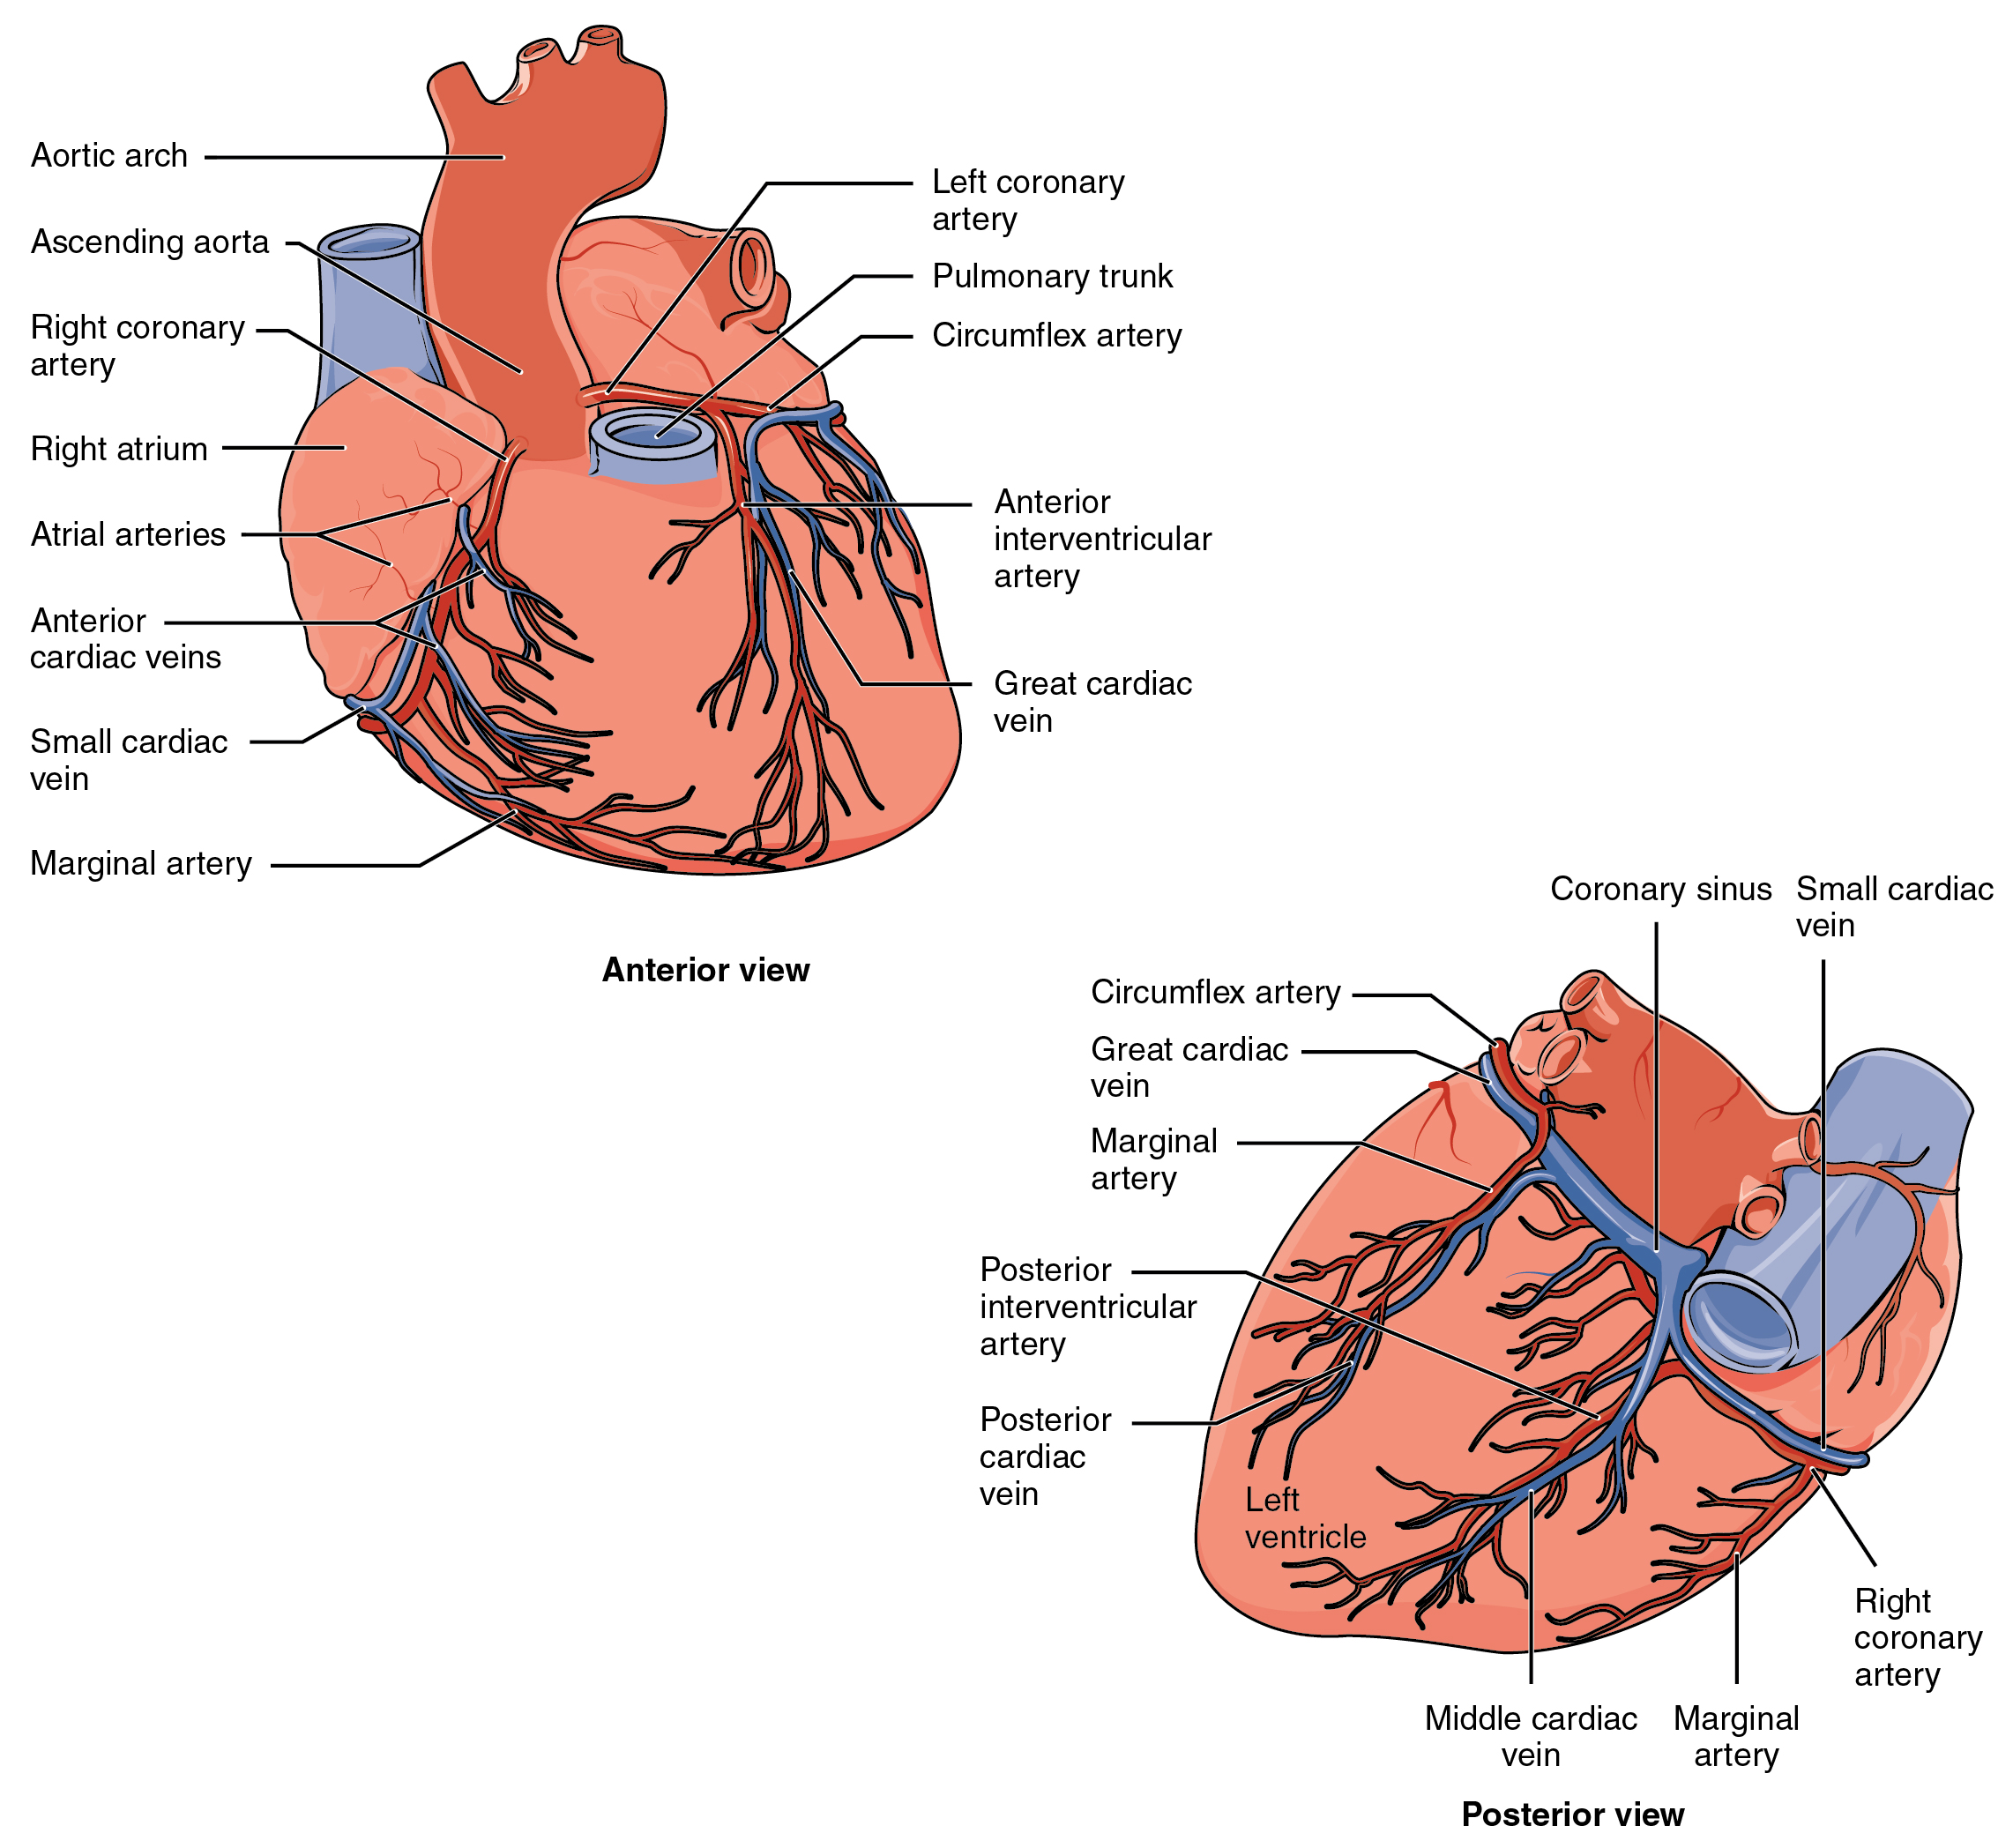 The top panel of this figure shows the anterior view of the heart while the bottom panel shows the posterior view of the heart. The different blood vessels are labeled.